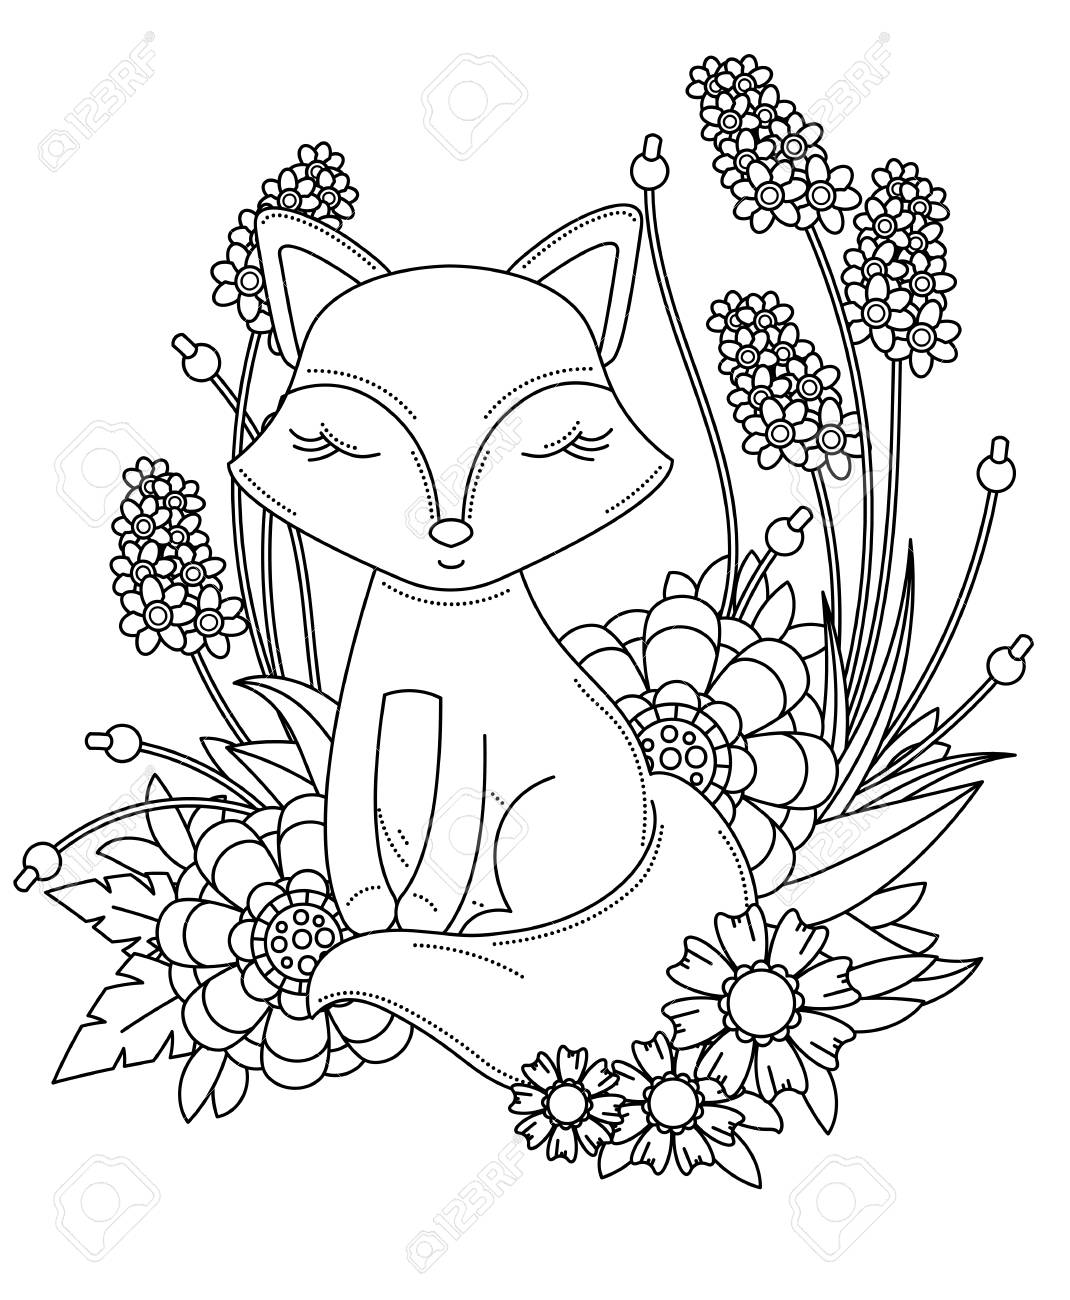 Coloring Book Page For Adult And Kids Cute Little Cartoon Fox Royalty Free Cliparts Vectors And Stock Illustration Image 127180373